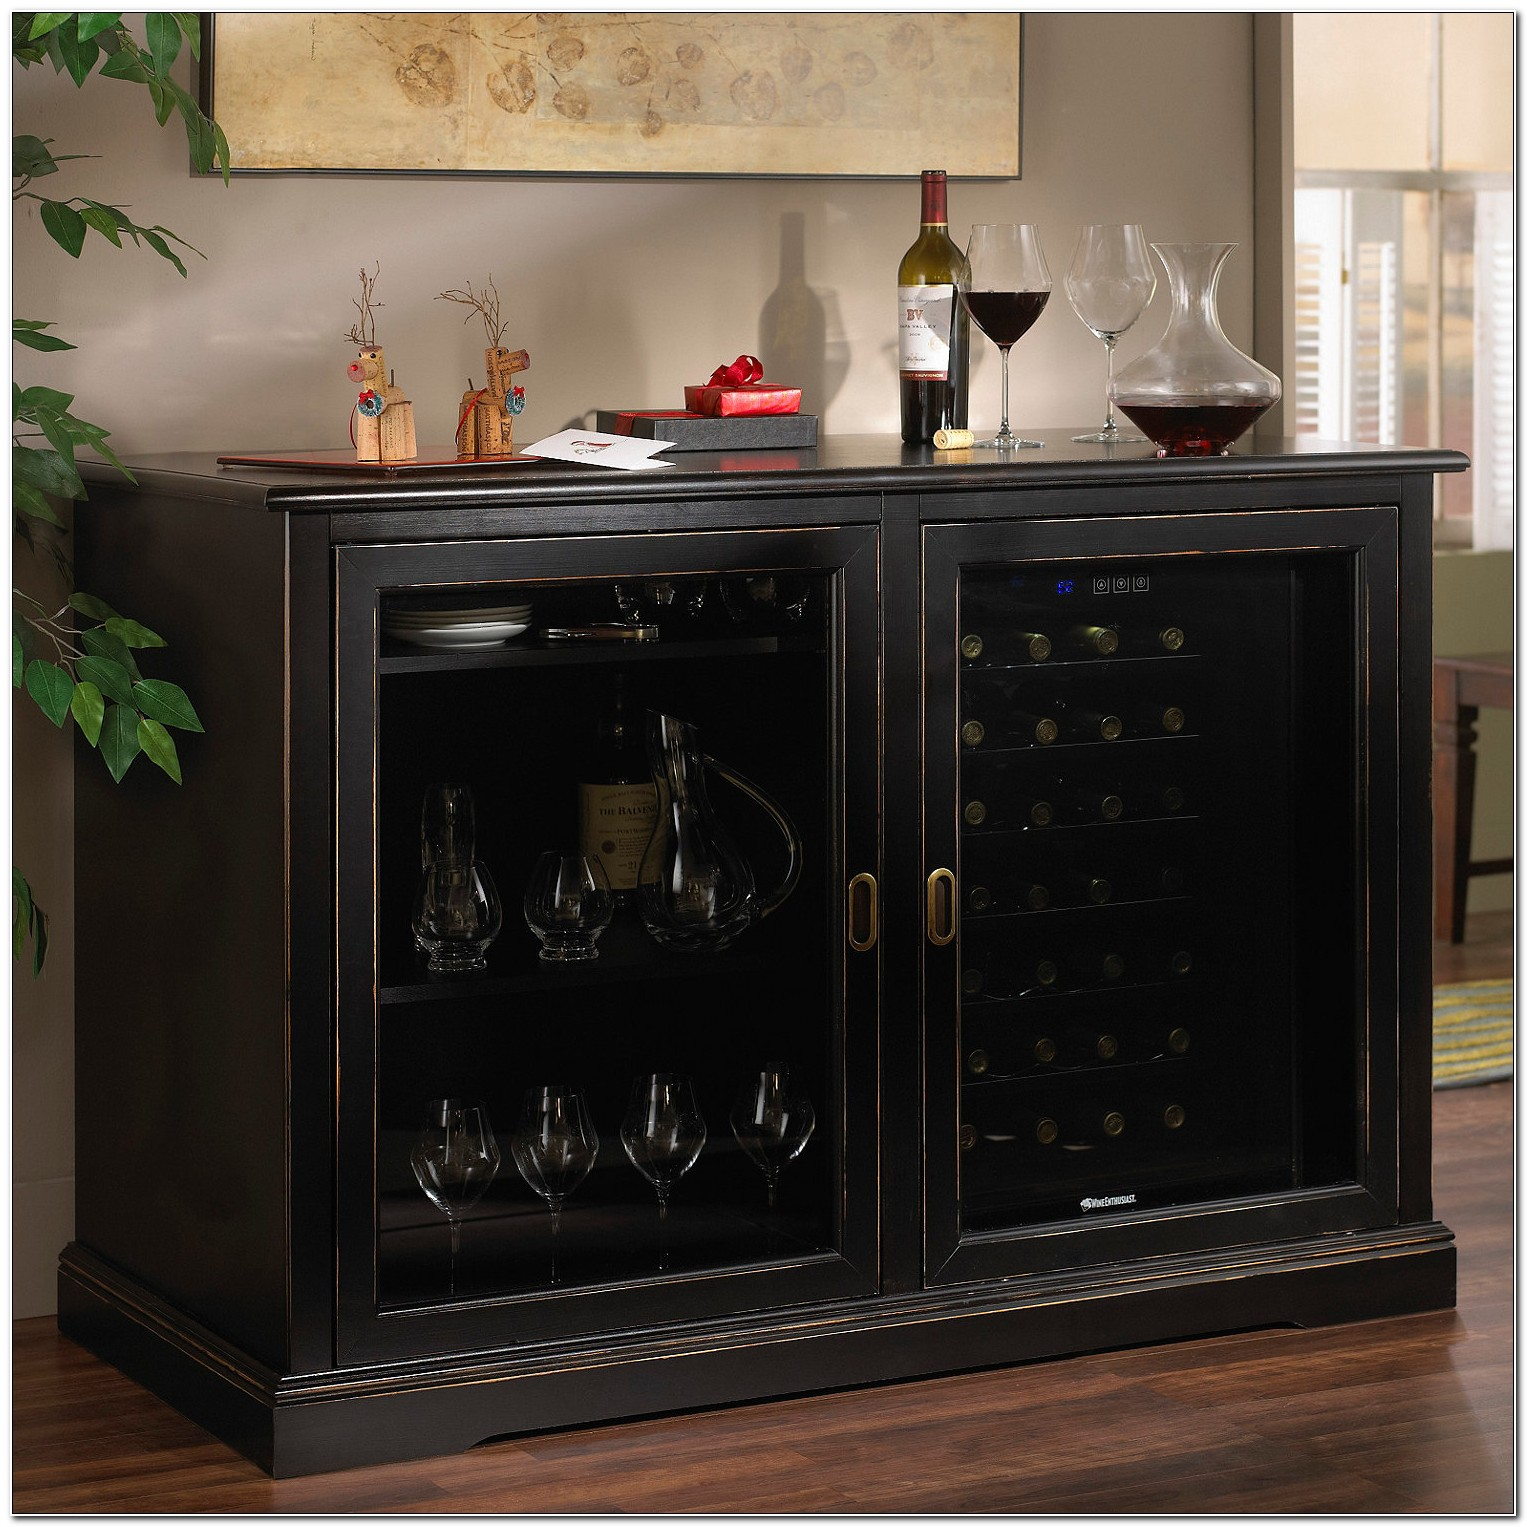 Refrigerated Wine Cabinets Furniture